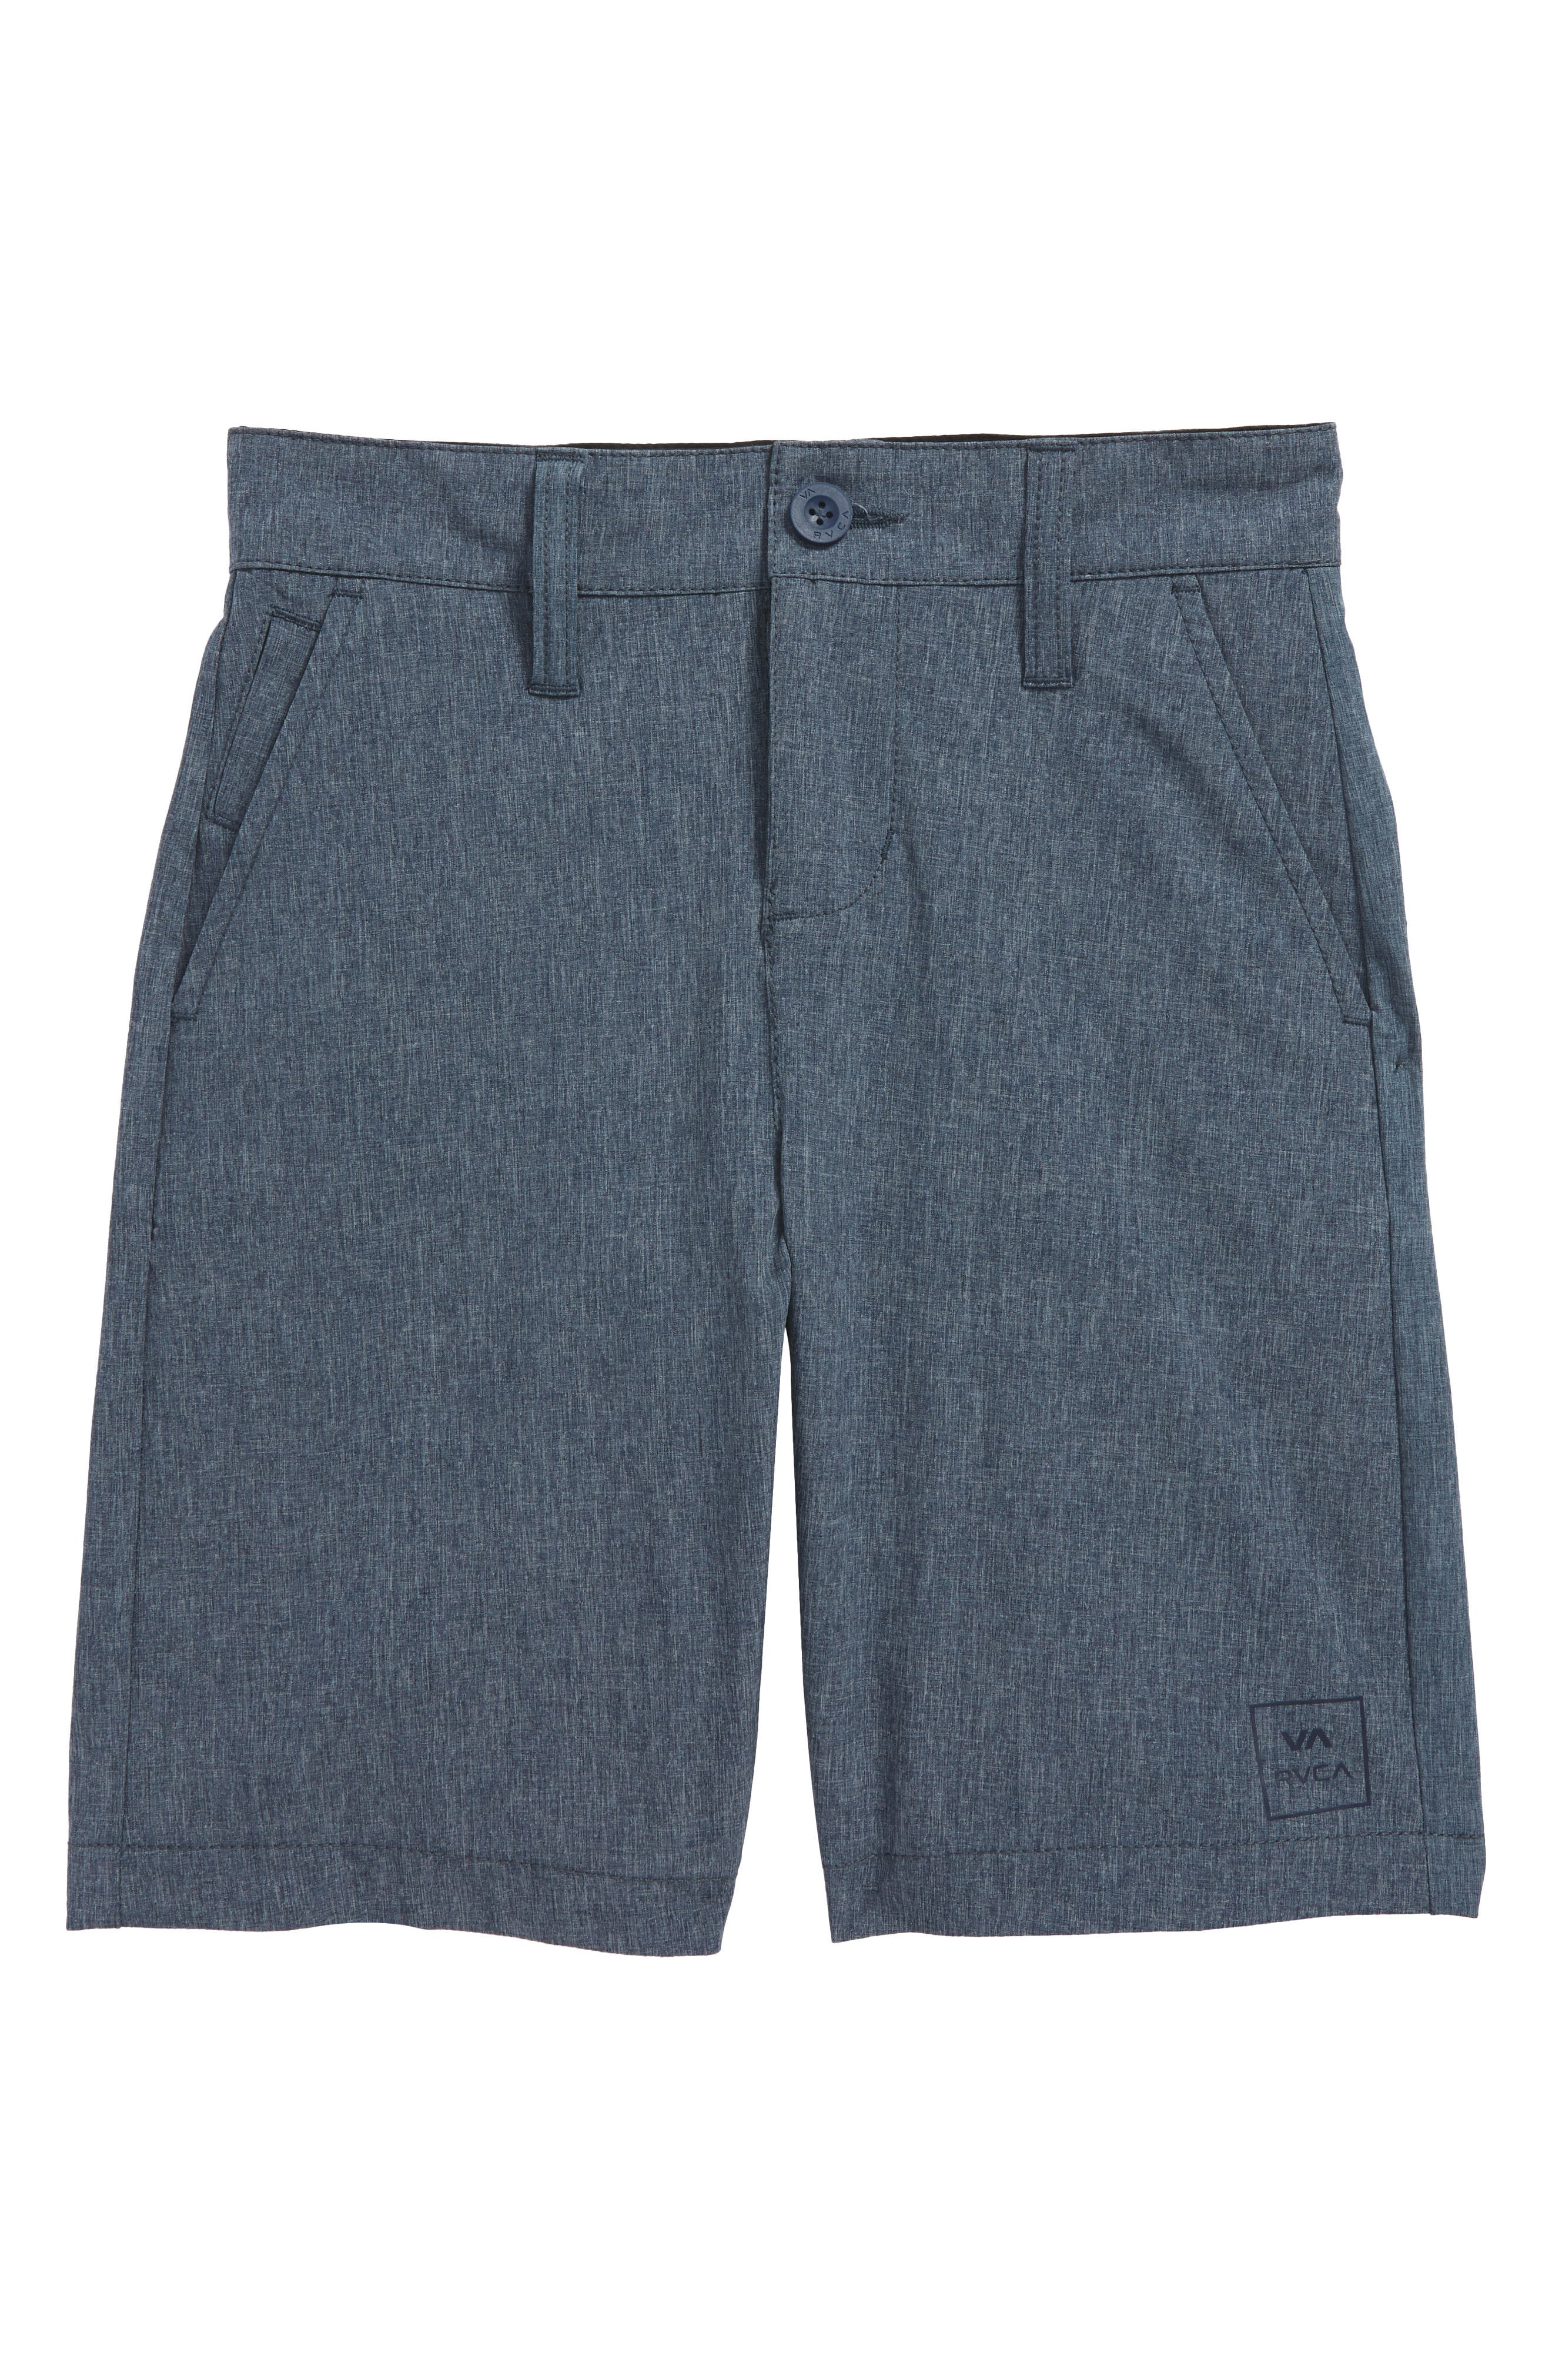 All the Way Hybrid Shorts,                         Main,                         color,